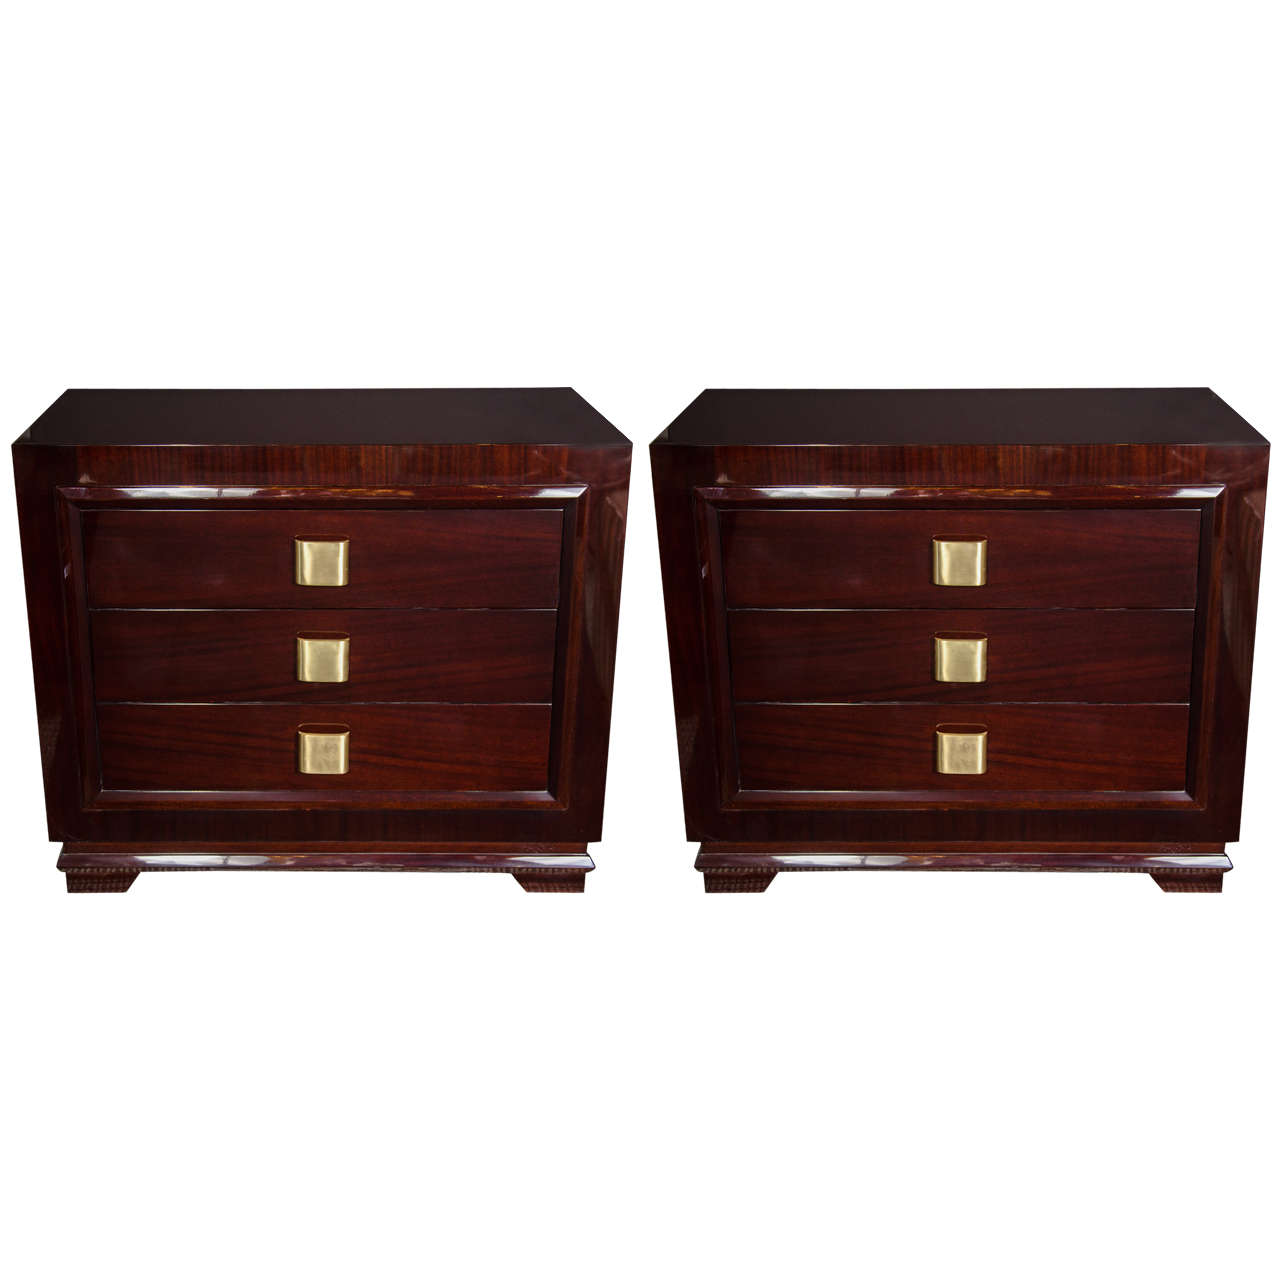 Pair of Outstanding Mid-Century Modern Chests with Brushed Brass Pulls 1